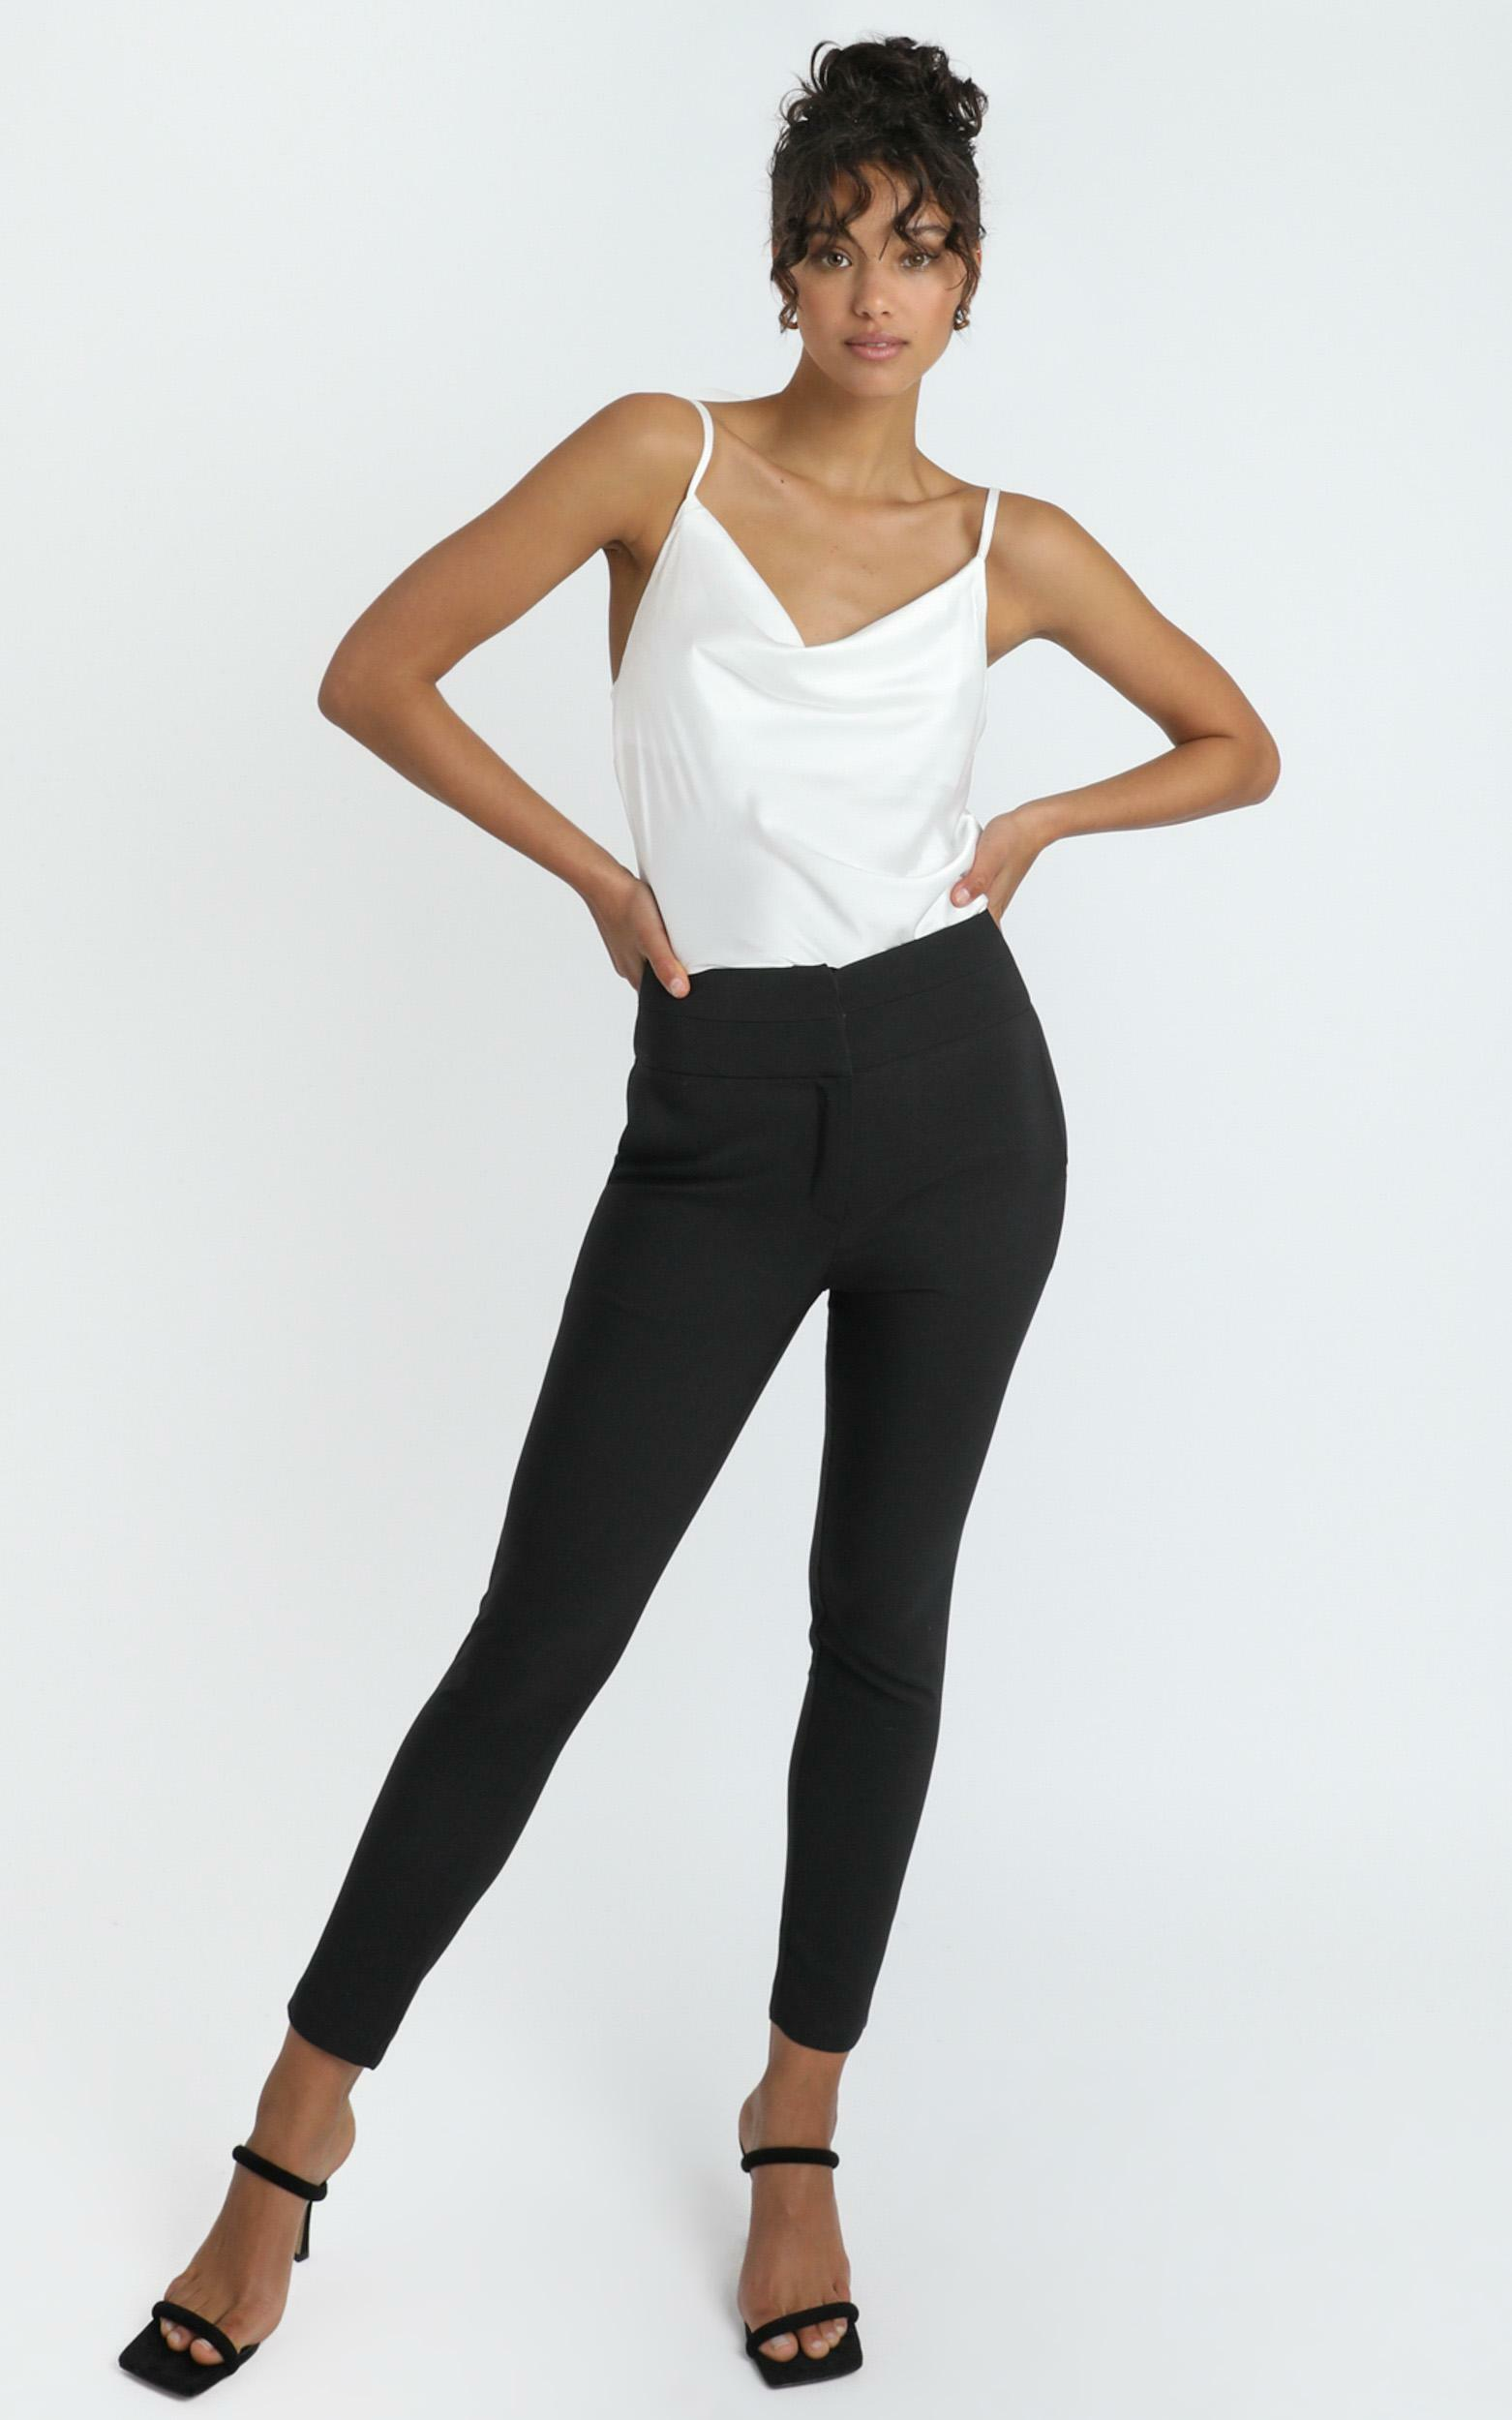 Straight Line Top in White - 04, WHT11, hi-res image number null